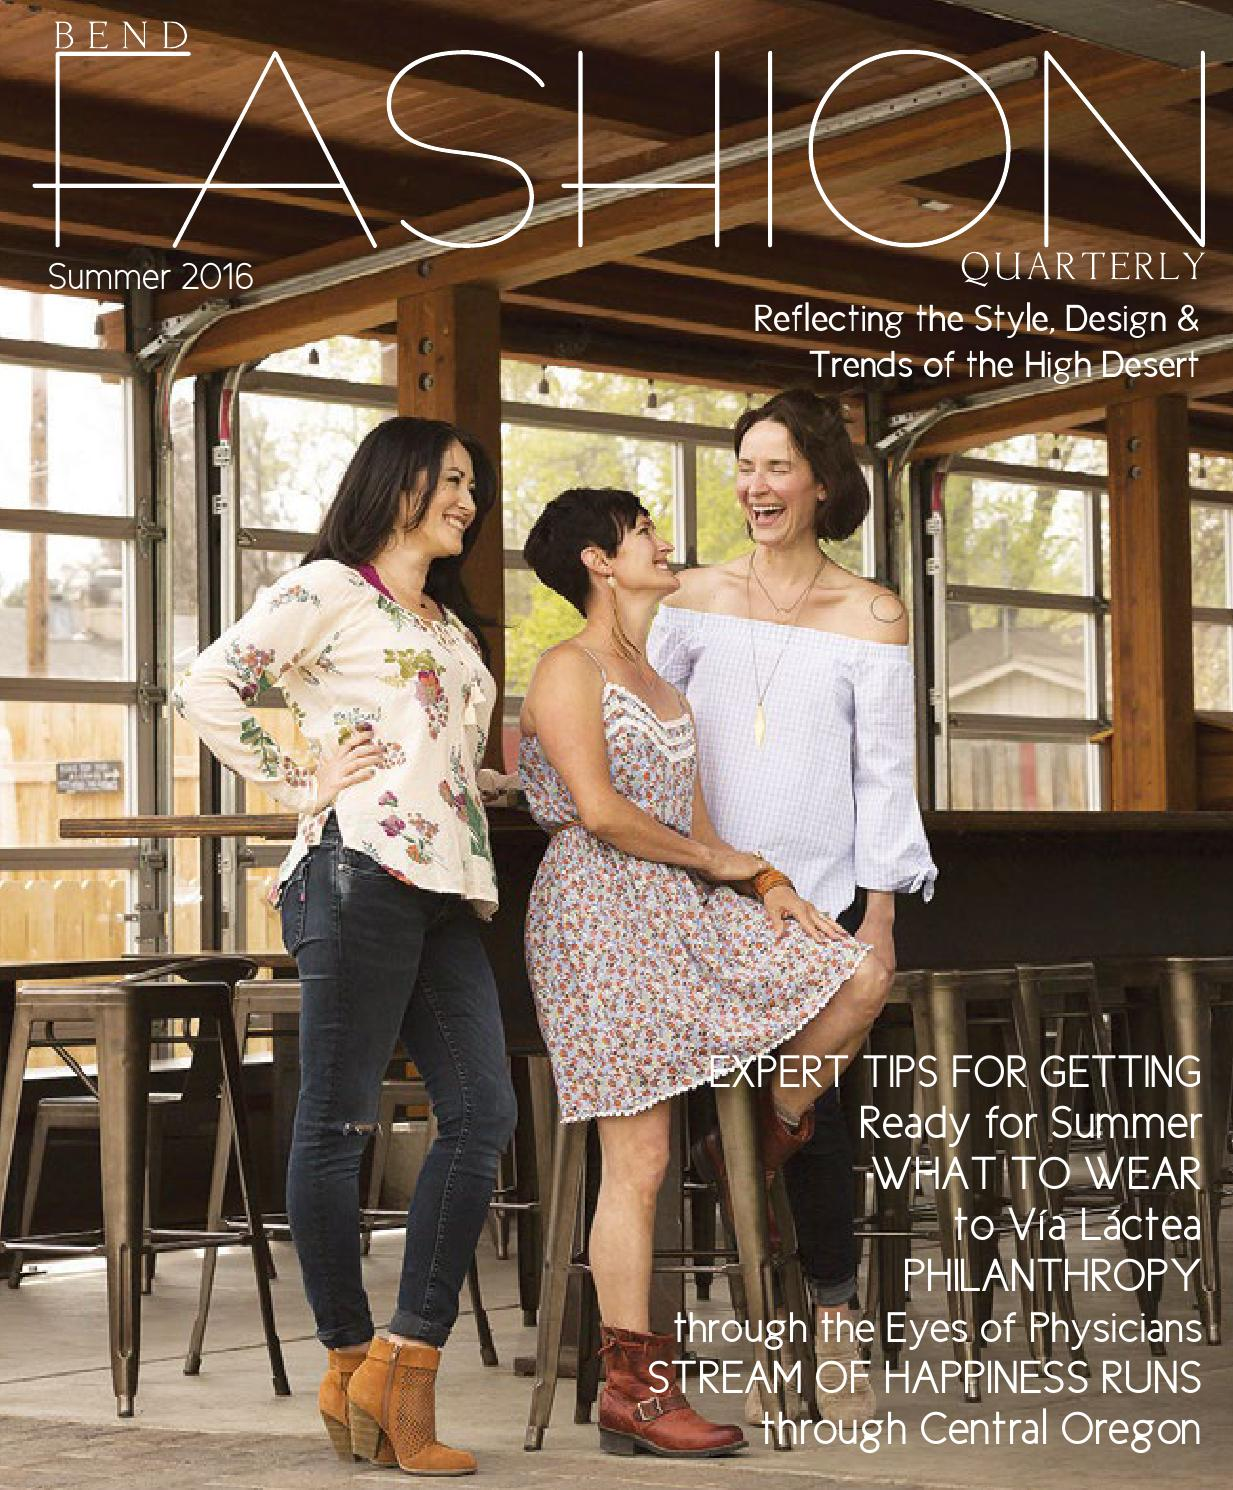 Bend Fashion Quarterly Summer 2016 By Cascade Publications